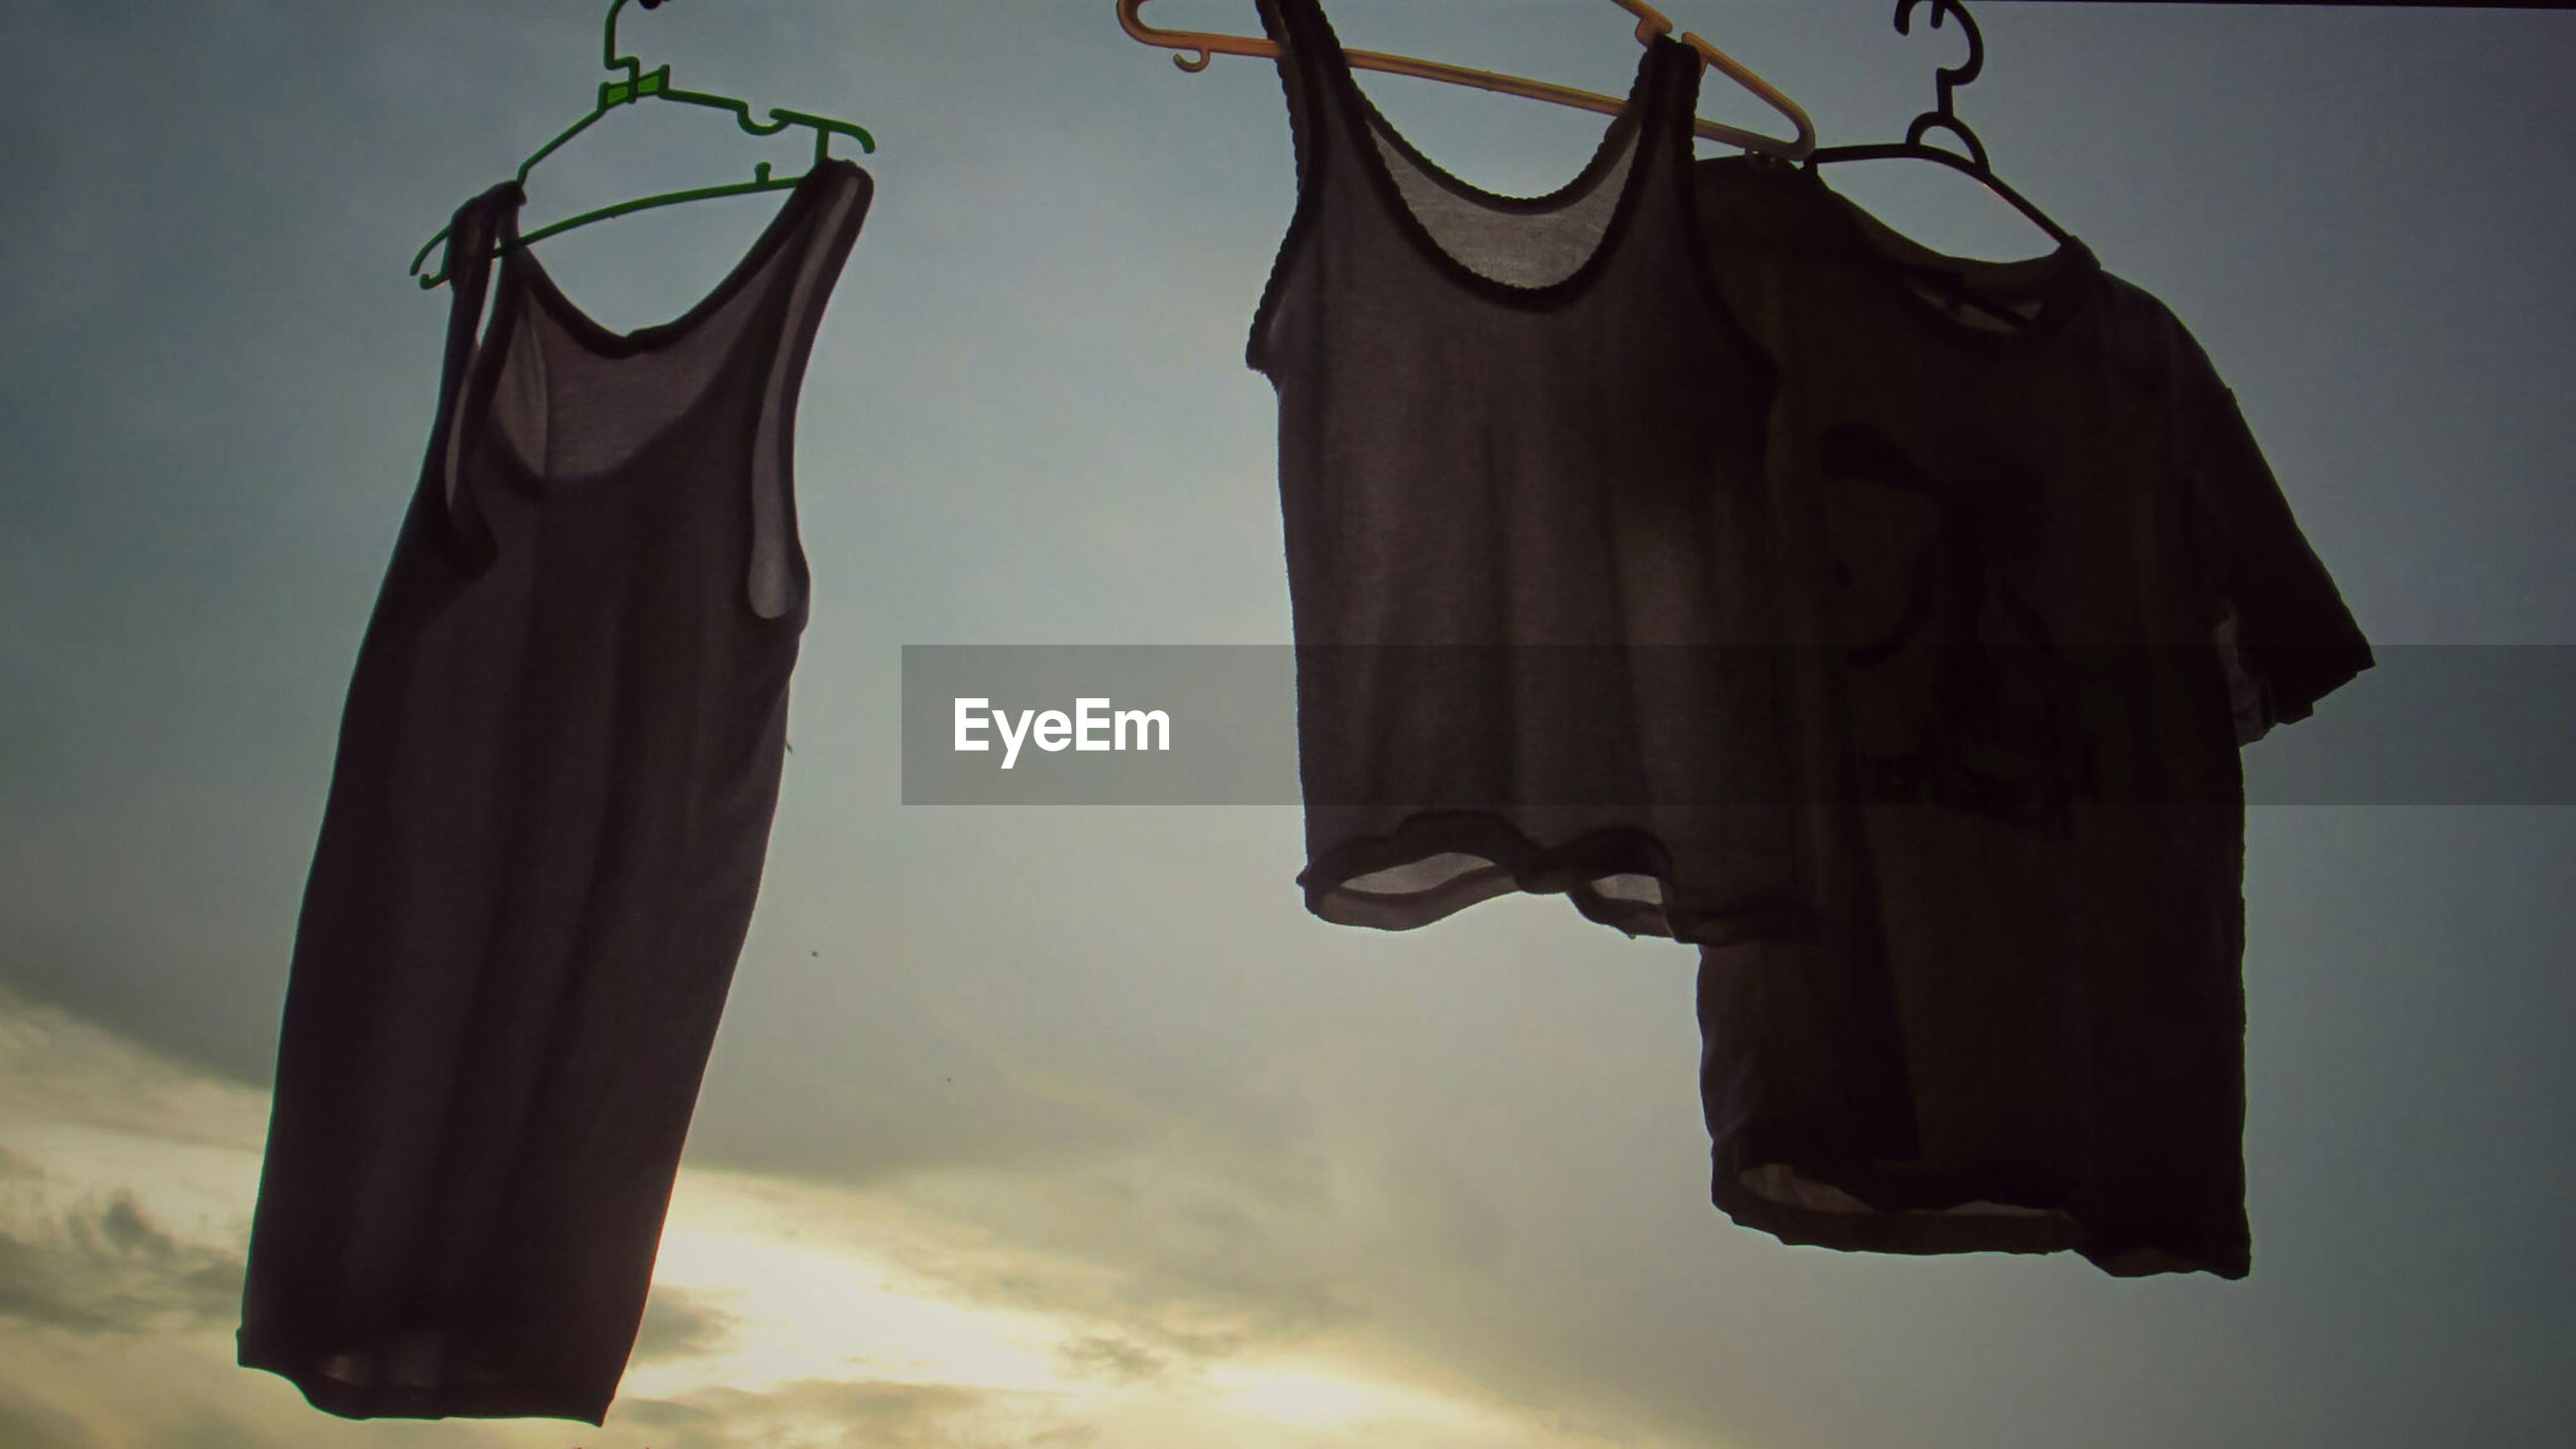 Clothes drying on coathangers against sky